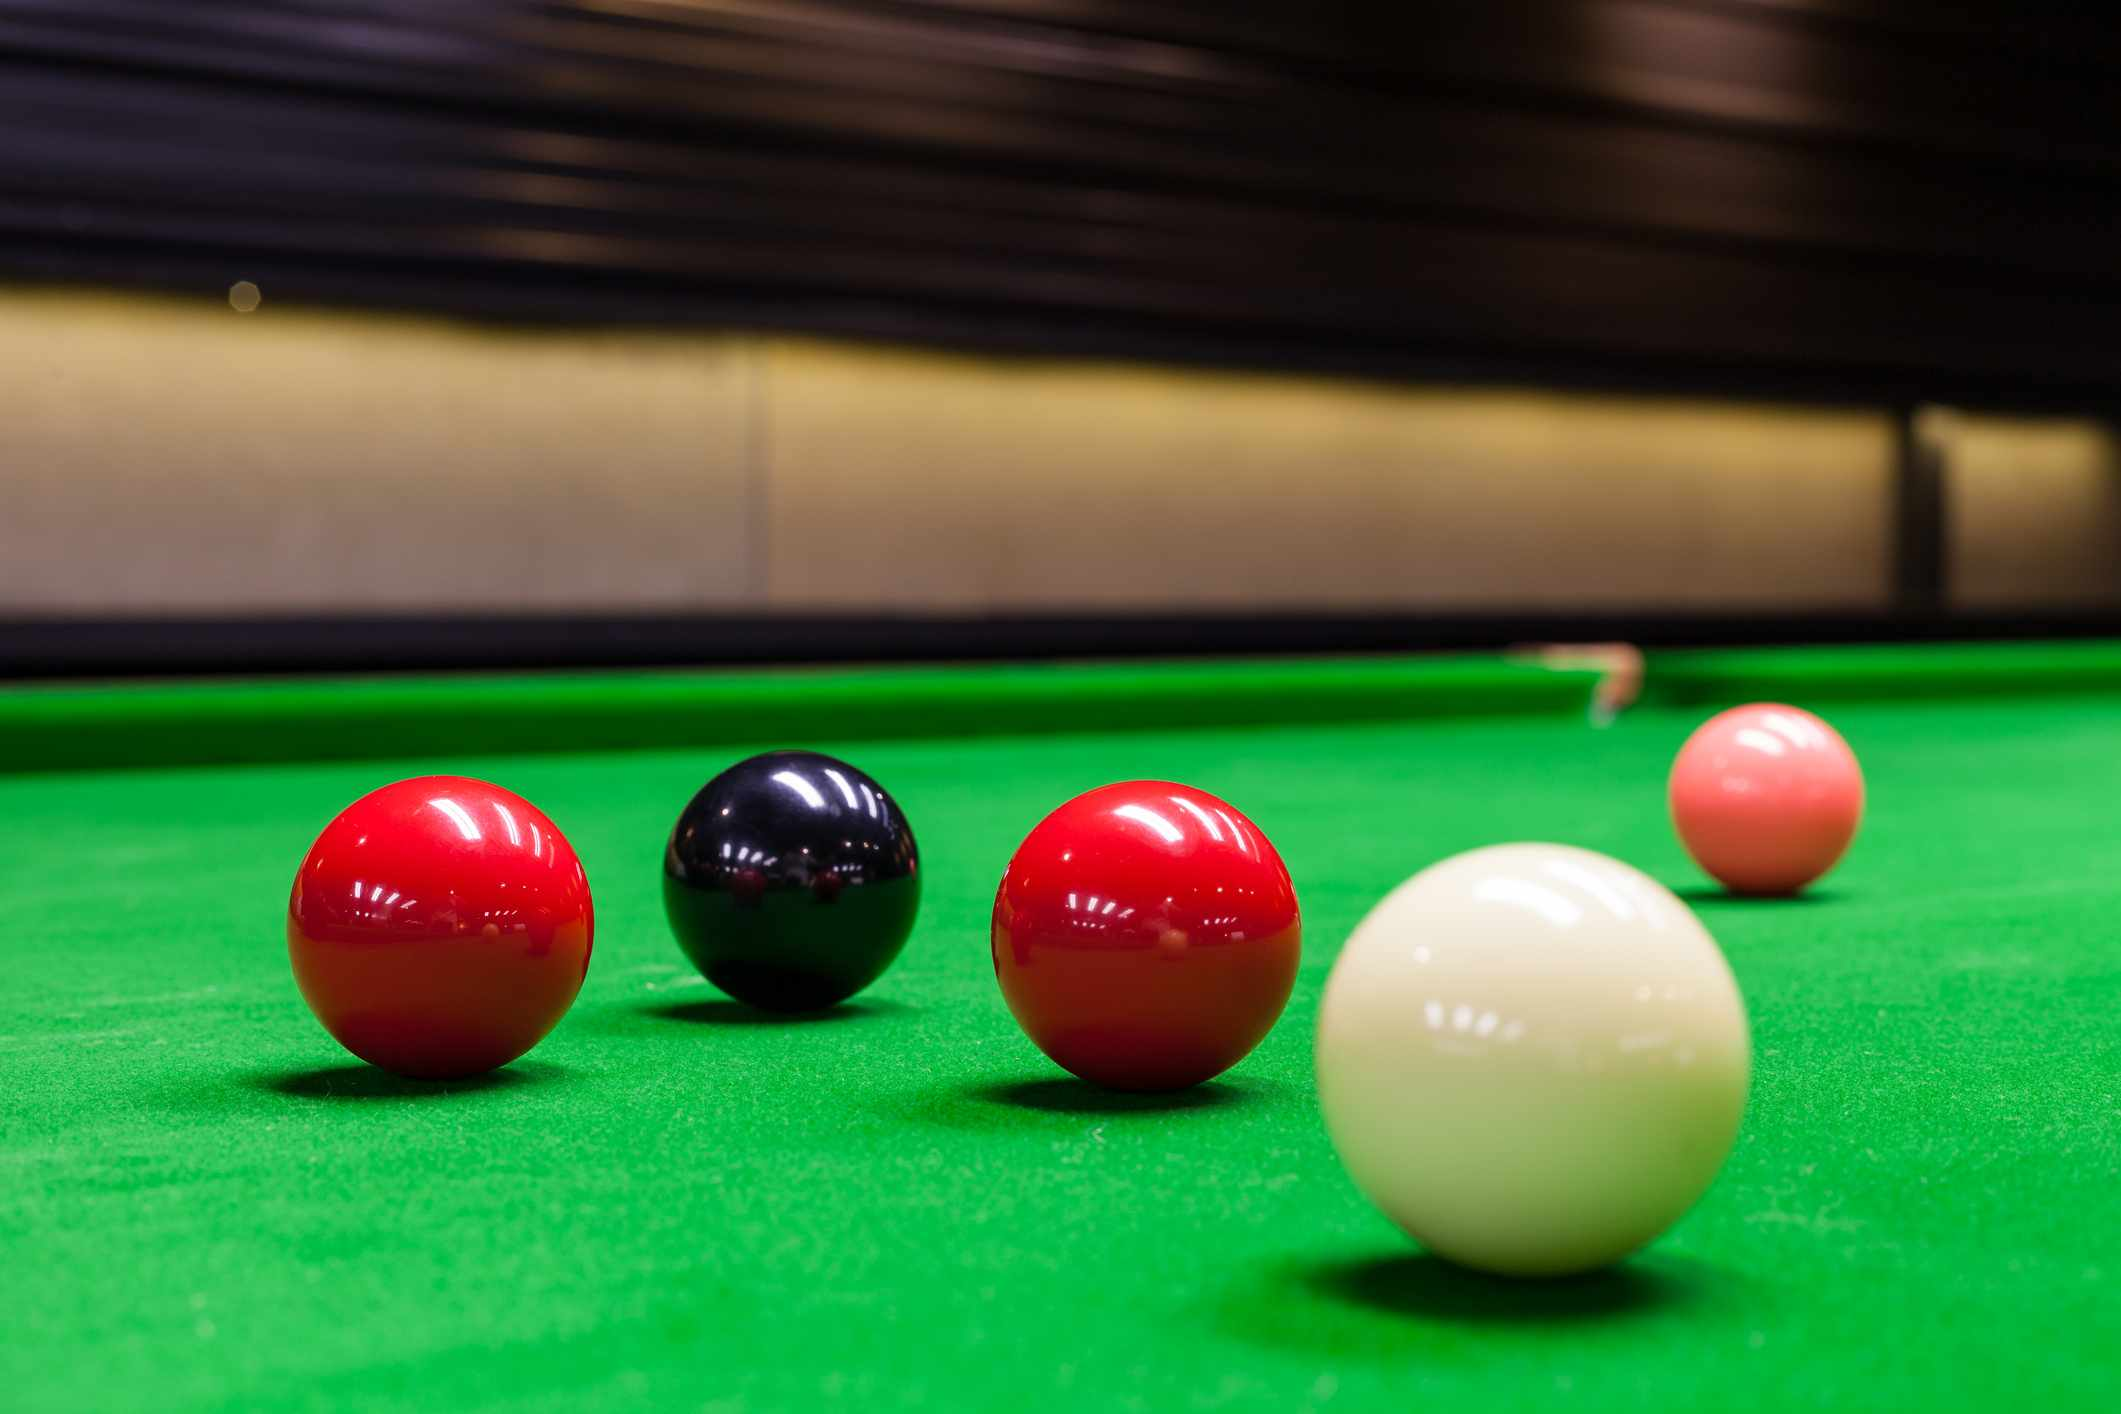 What are the chances of having two identical snooker games? © Getty Images